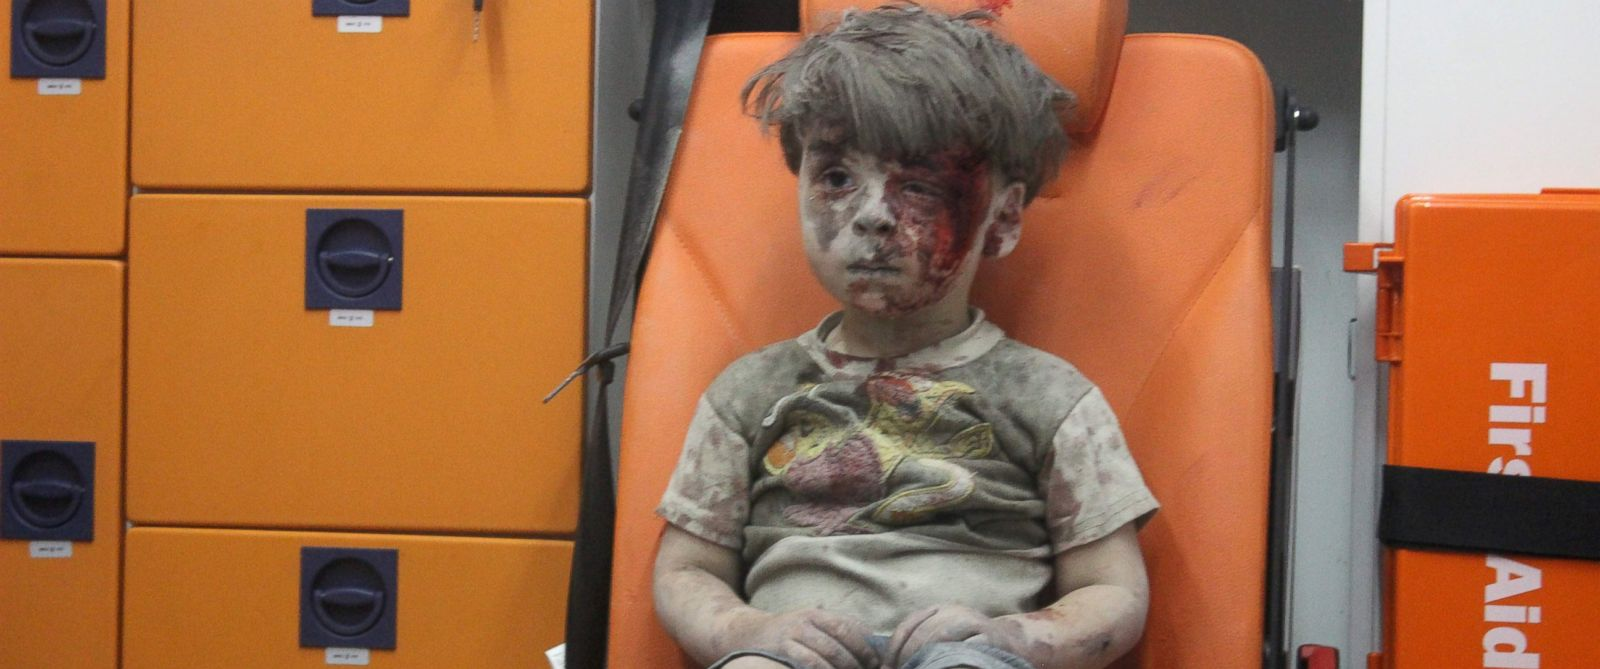 http://a.abcnews.com/images/International/gty_syria_children_03_jc_160912_1_12x5_1600.jpg